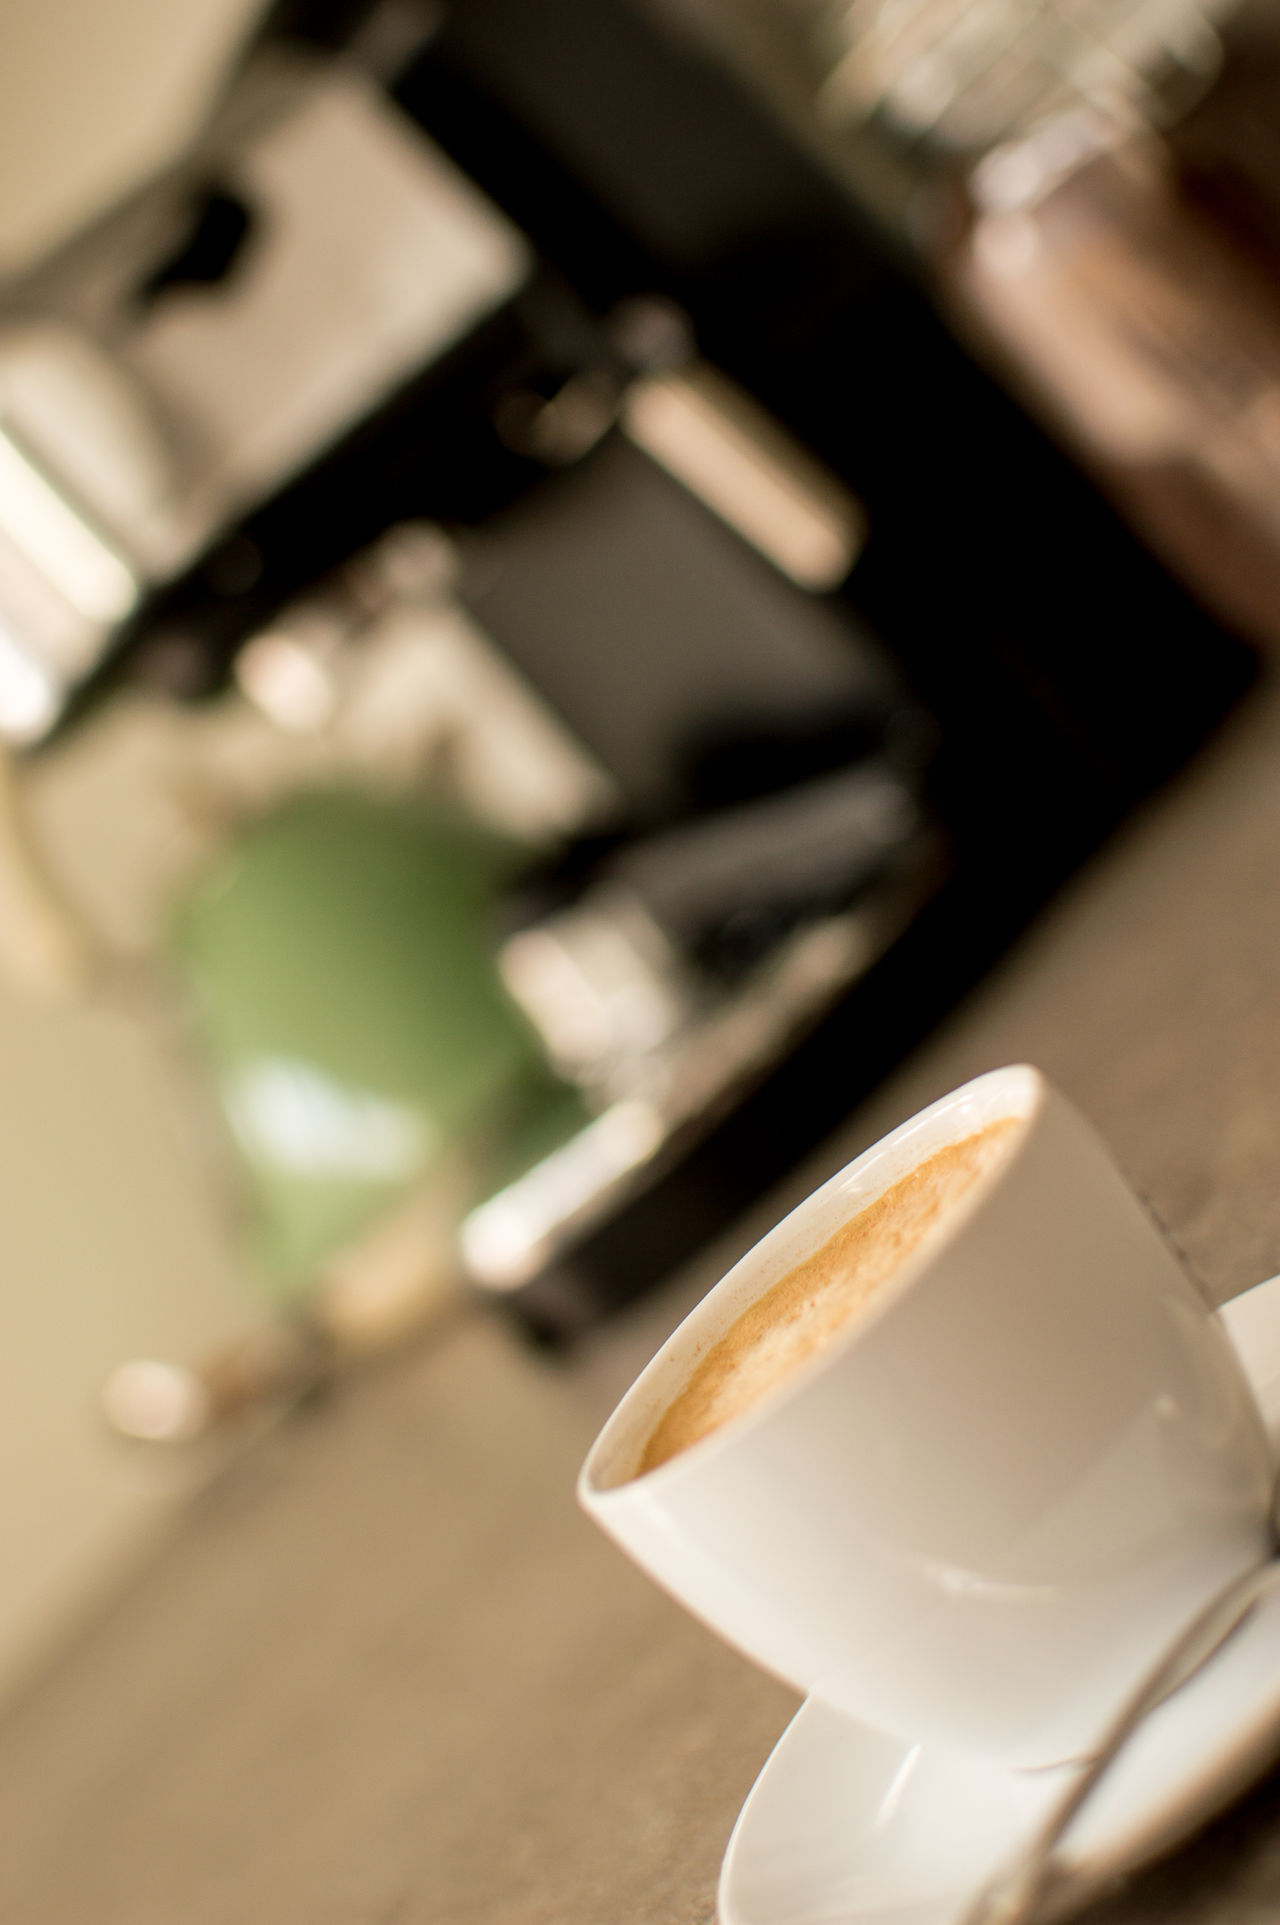 Close-up Coffee Differential Focus Espresso Espresso Machine Focus On Foreground Hot Drink No People Selective Focus Tranquility